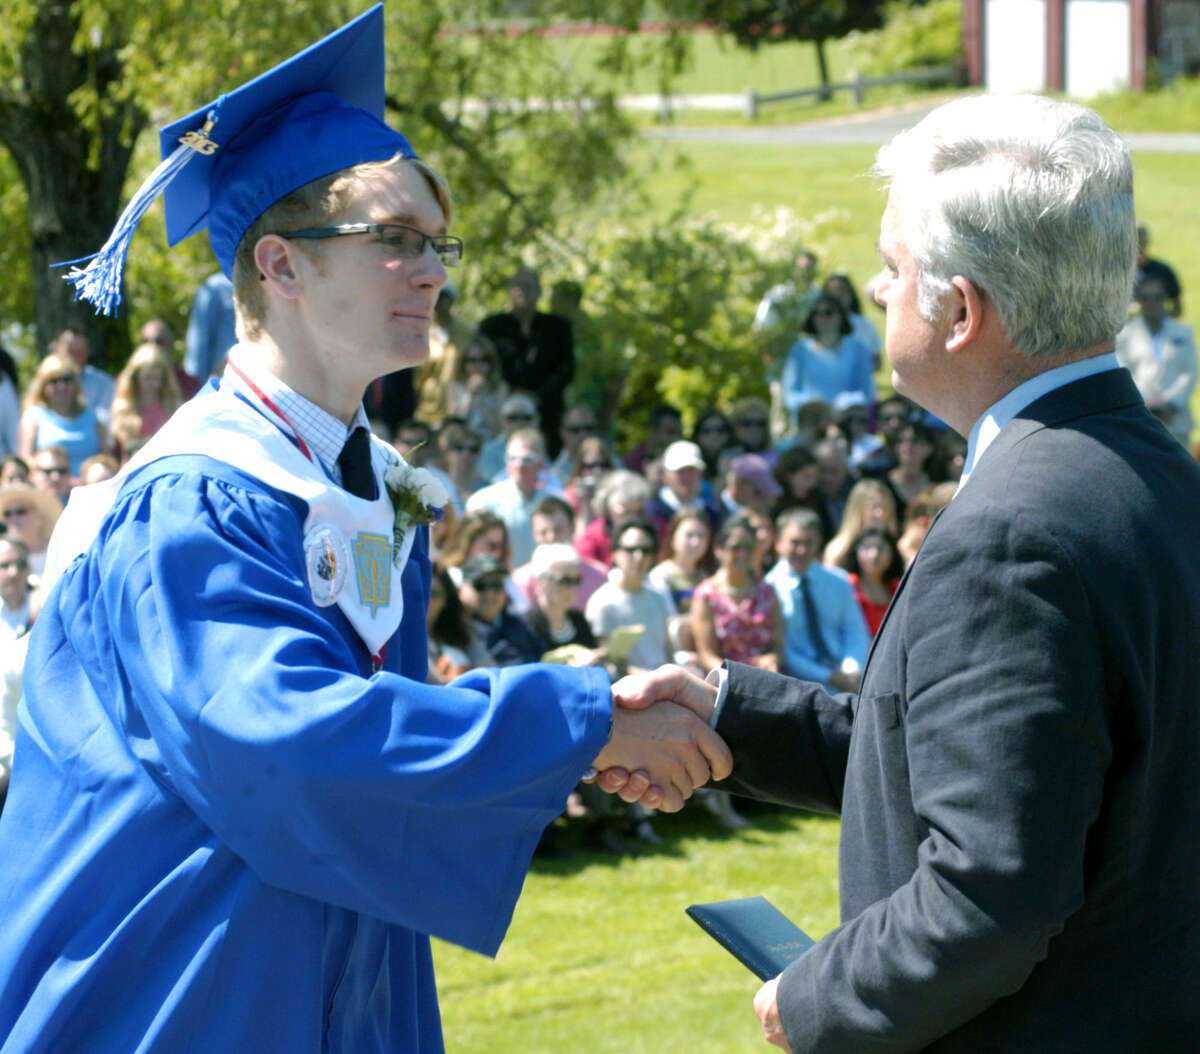 Ellery Rourke offers Region 12 Board of Education Chairman James Hirschfield an appreciative handshake as he receives his diploma Saturday during Shepaug Valley High School's commencement ceremony for the Class of 2013. June 16, 2013